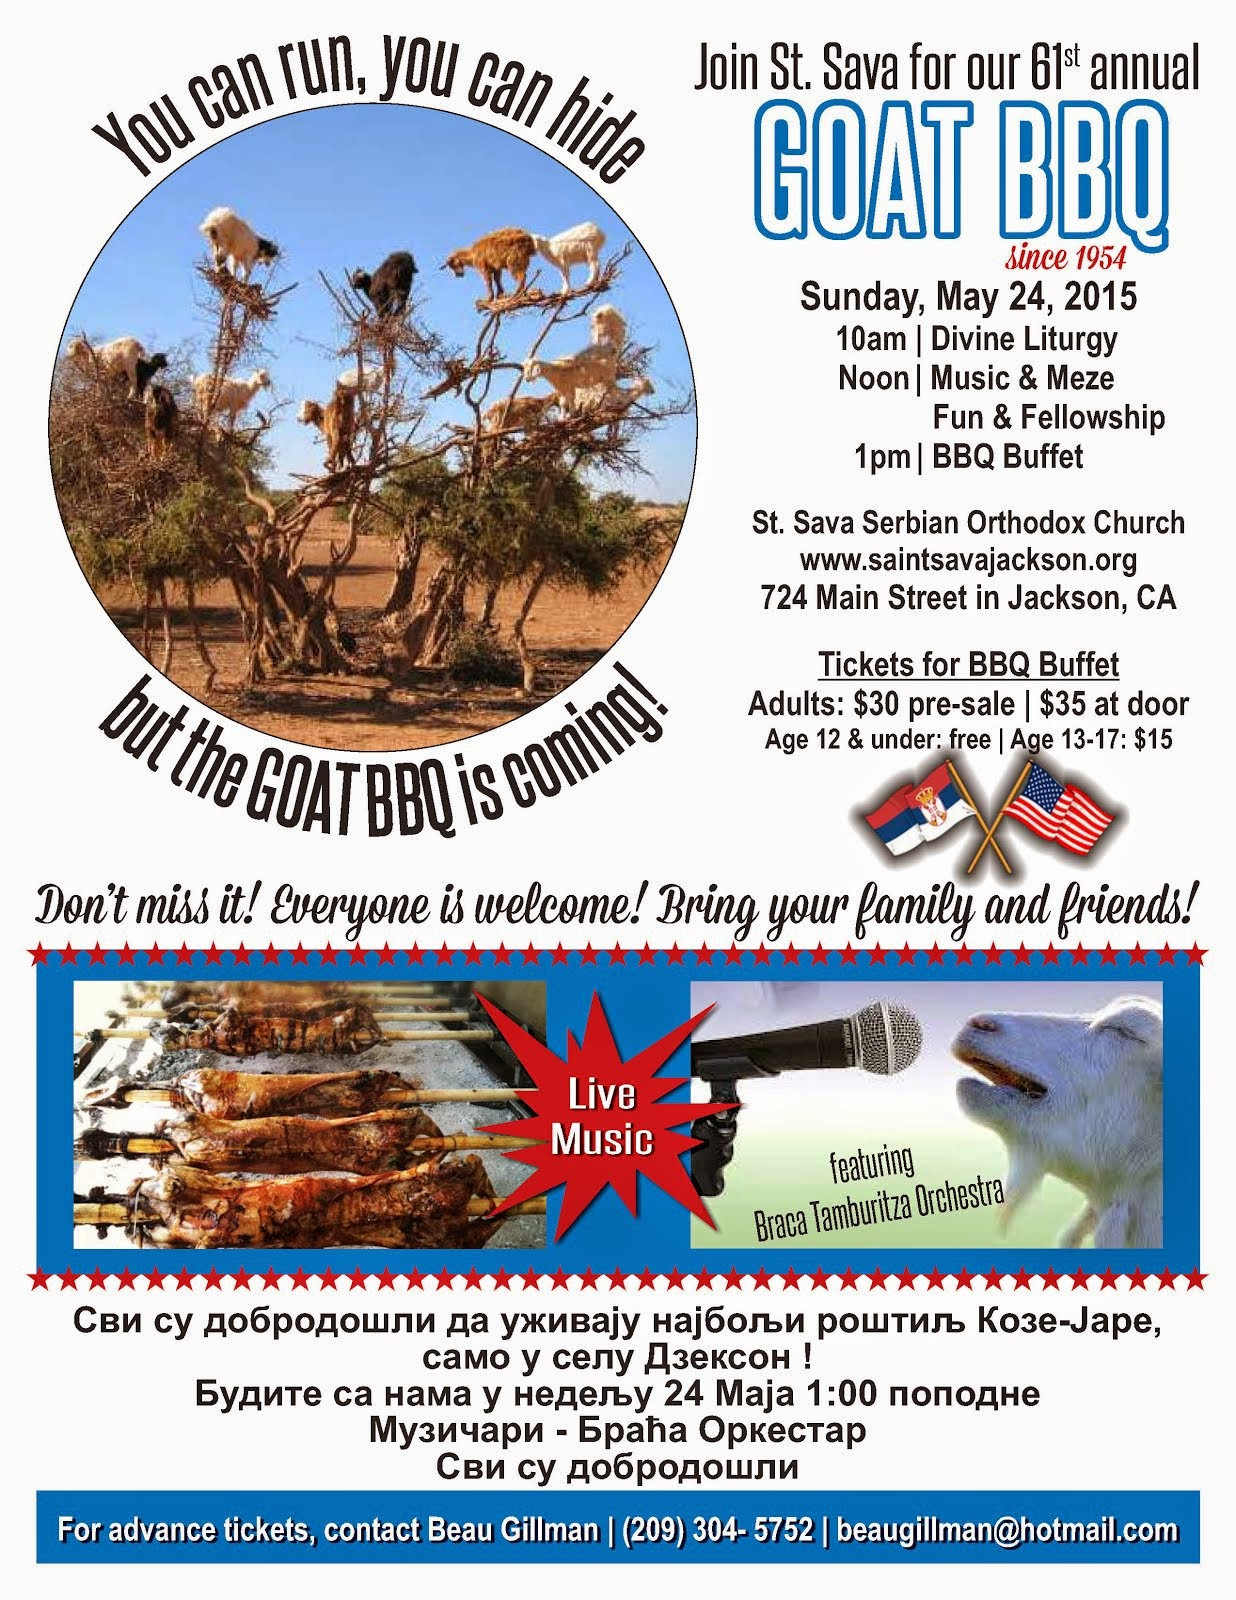 61st Annual St. Sava Goat BBQ - Sun May 24